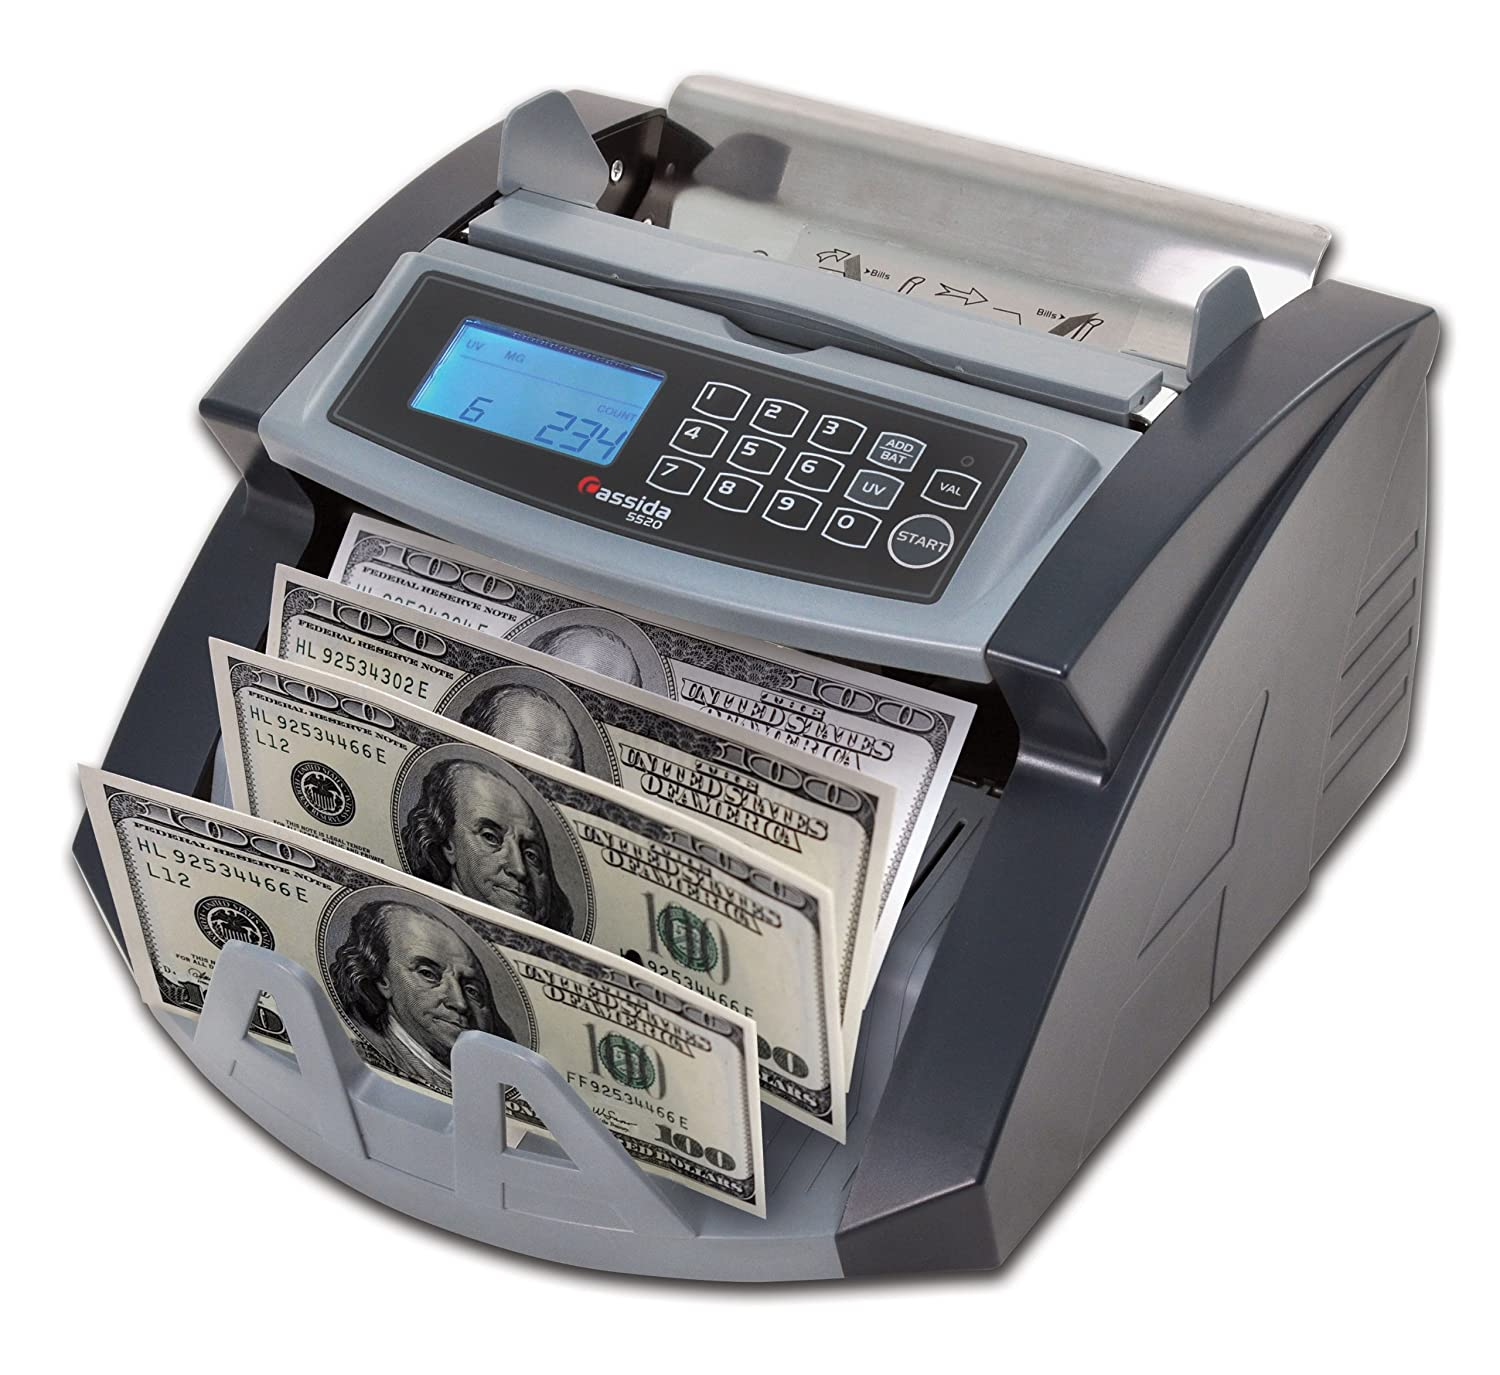 Money currency counter machine professional counting bank sorter bill cash bills ebay - Coin bank that counts money ...